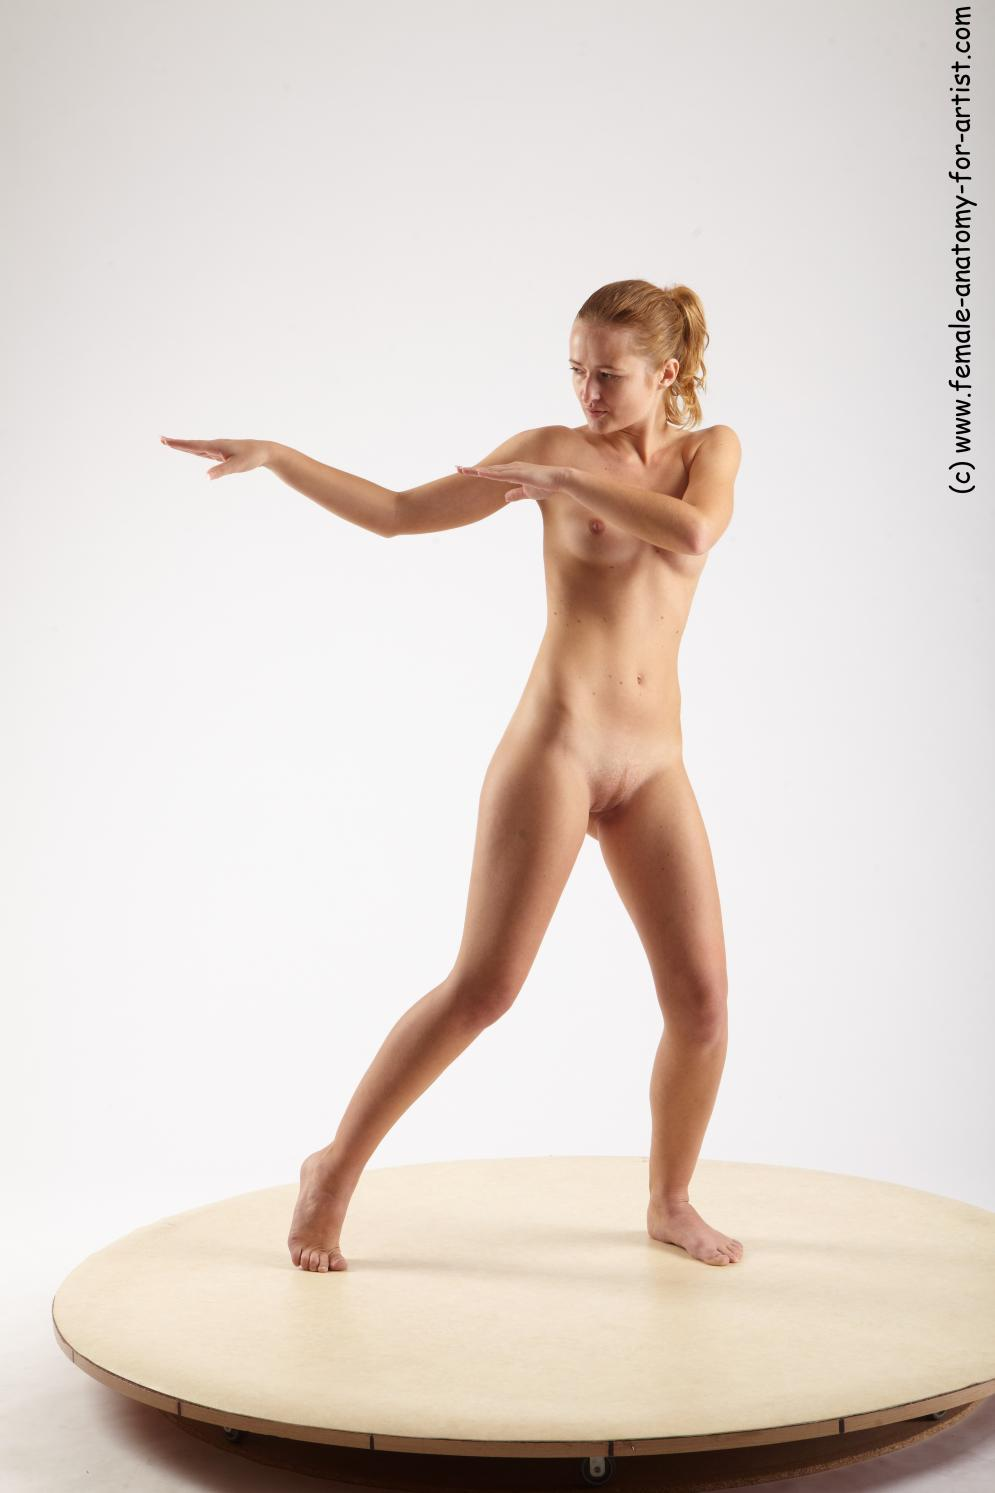 Image from Female dancing poses - anna_standing_01.jpg